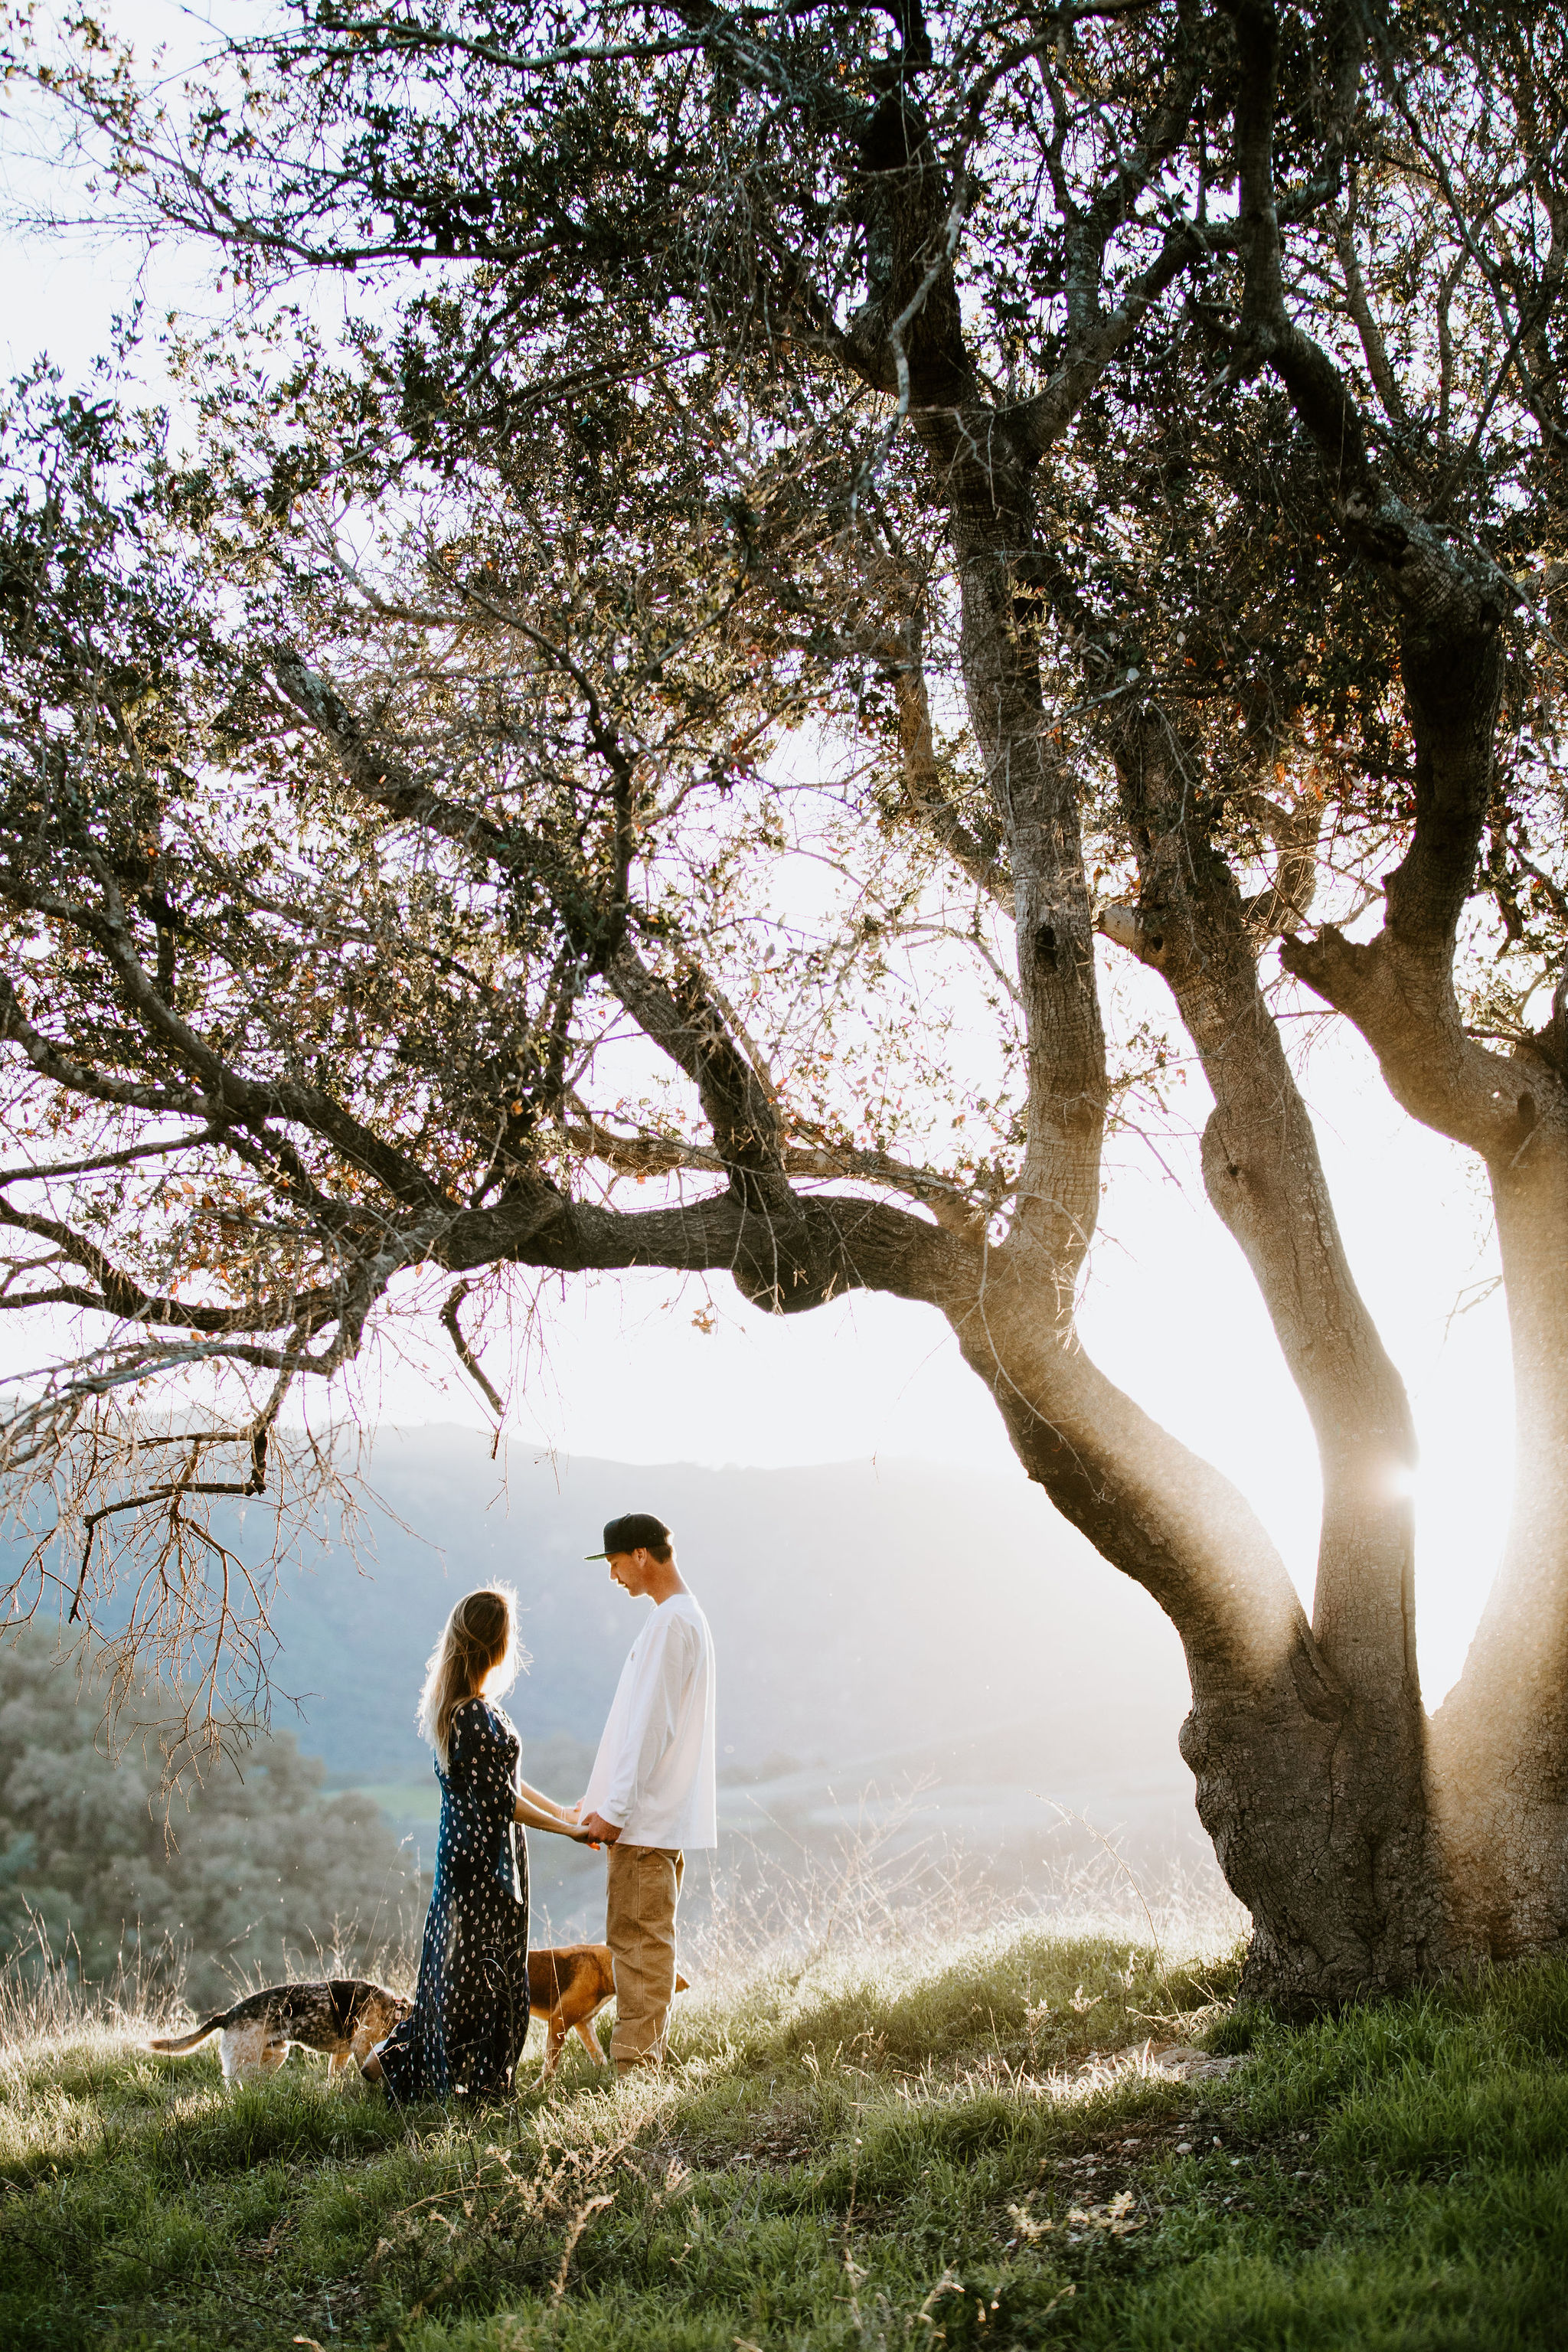 OjaiEngagementSession_Geoff&LyndsiPhotography_Eveline&Scotty75.jpg